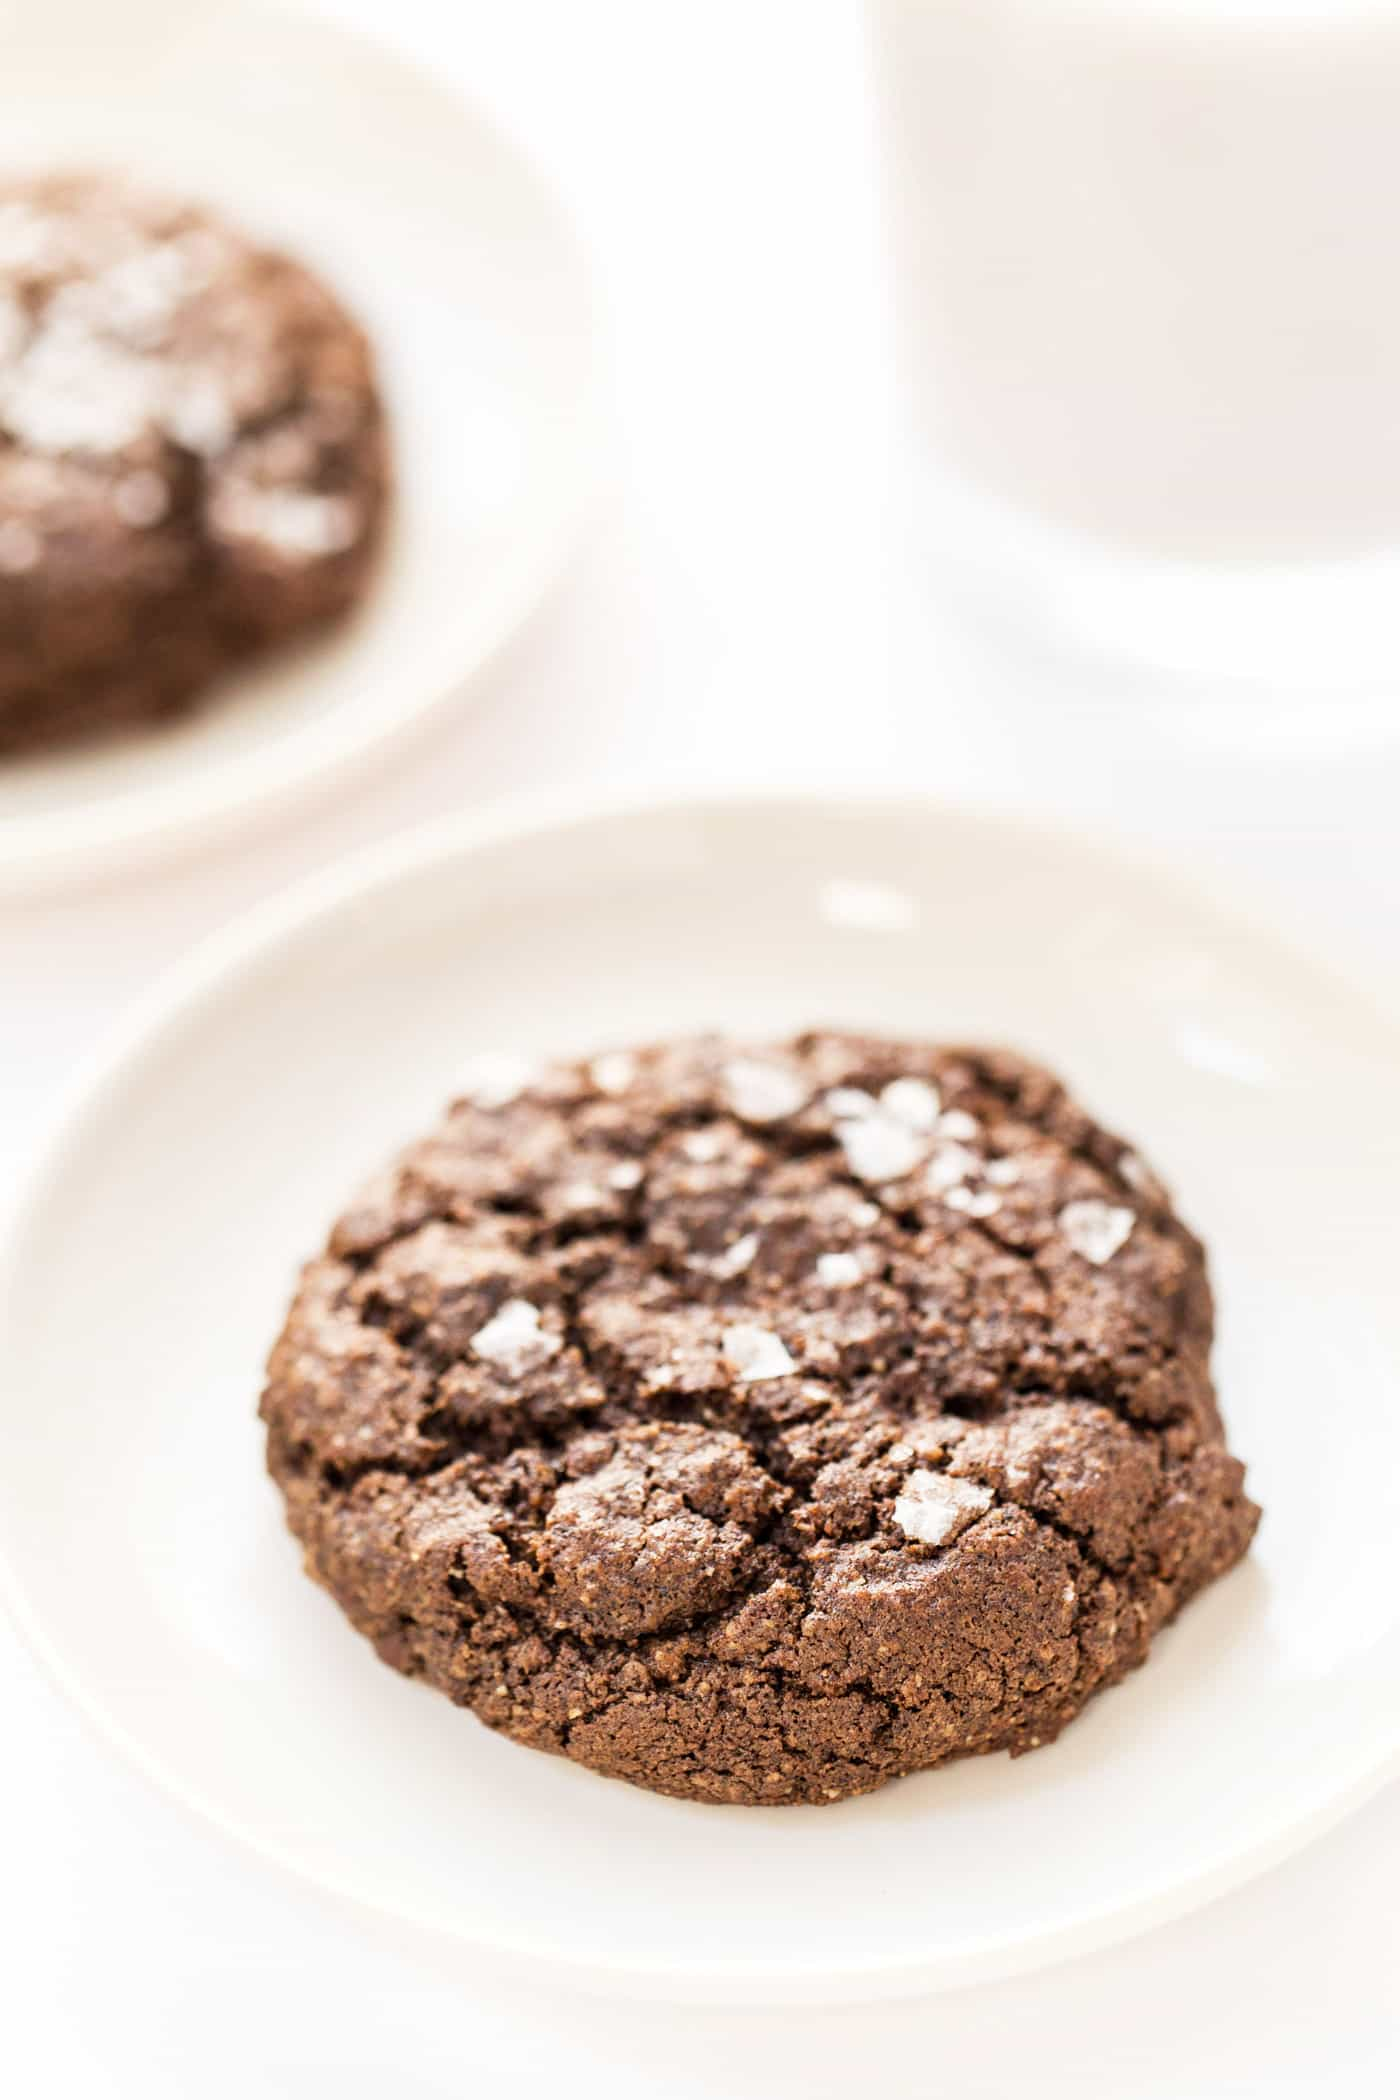 healthy double dark chocolate quinoa cookies made with buckwheat flour